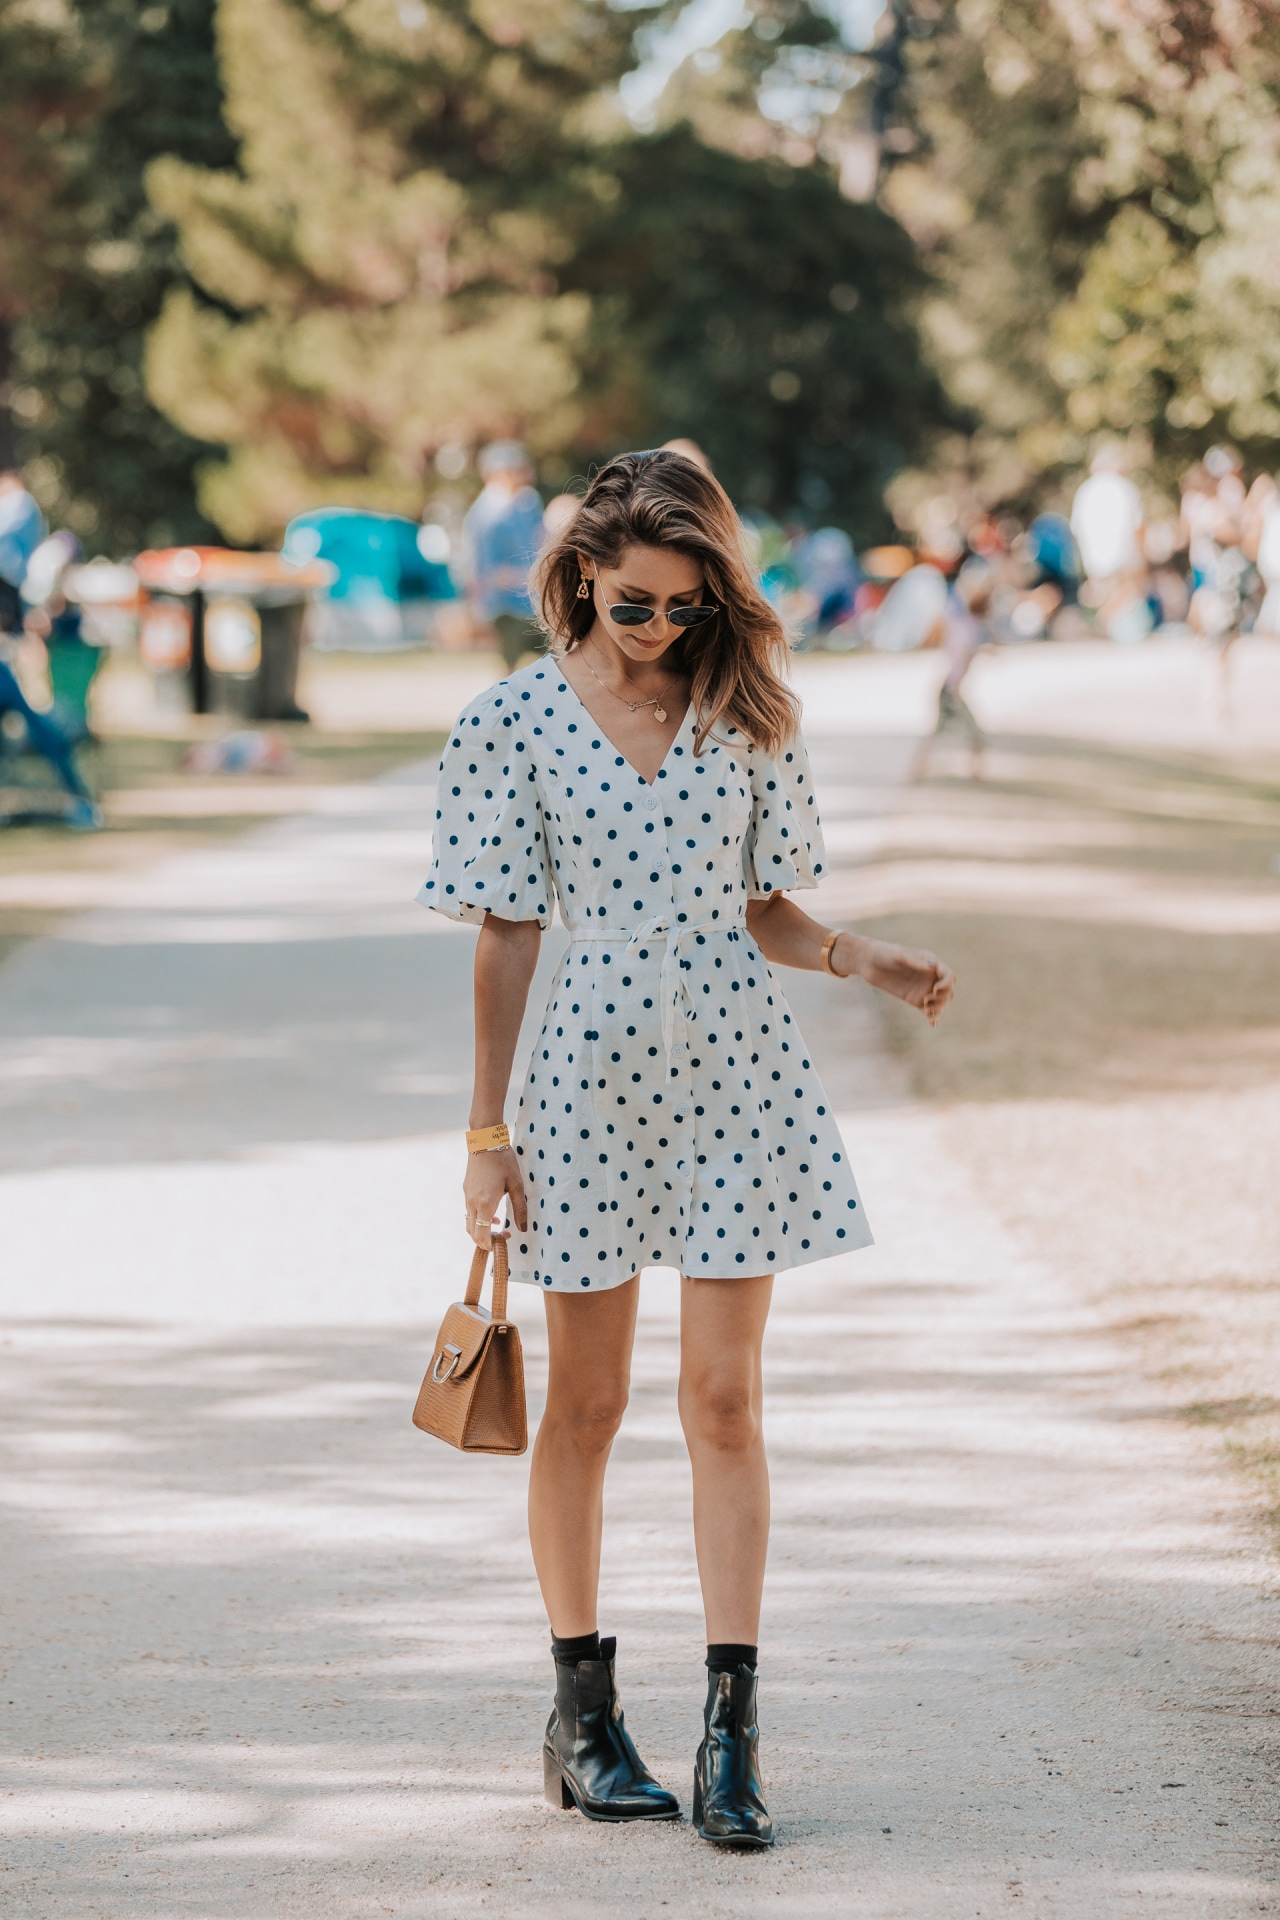 The best street style from the 2019 So Frenchy So Chic Melbourne music festival